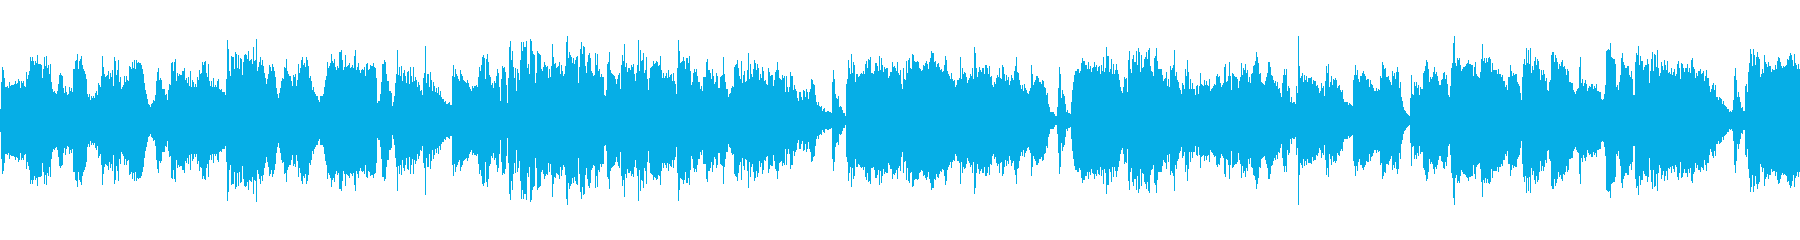 Sweet, melodic an...'s reproduced waveform